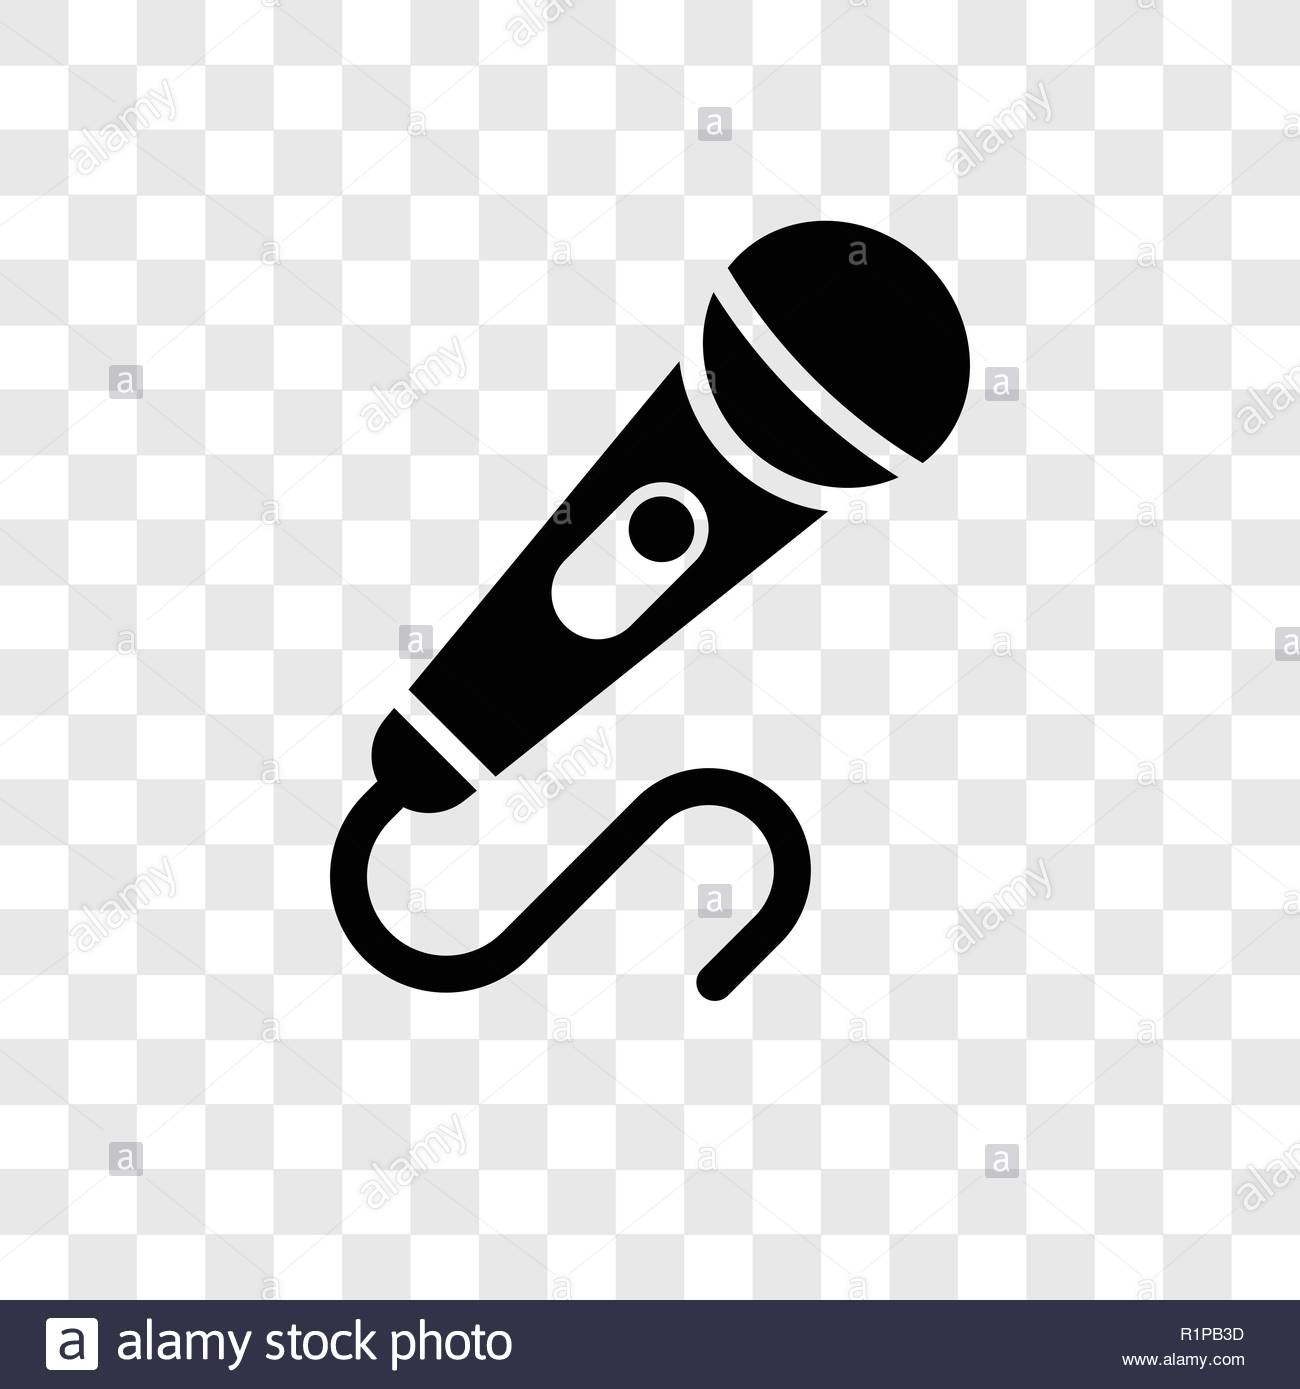 Microphone vector icon isolated on transparent background.